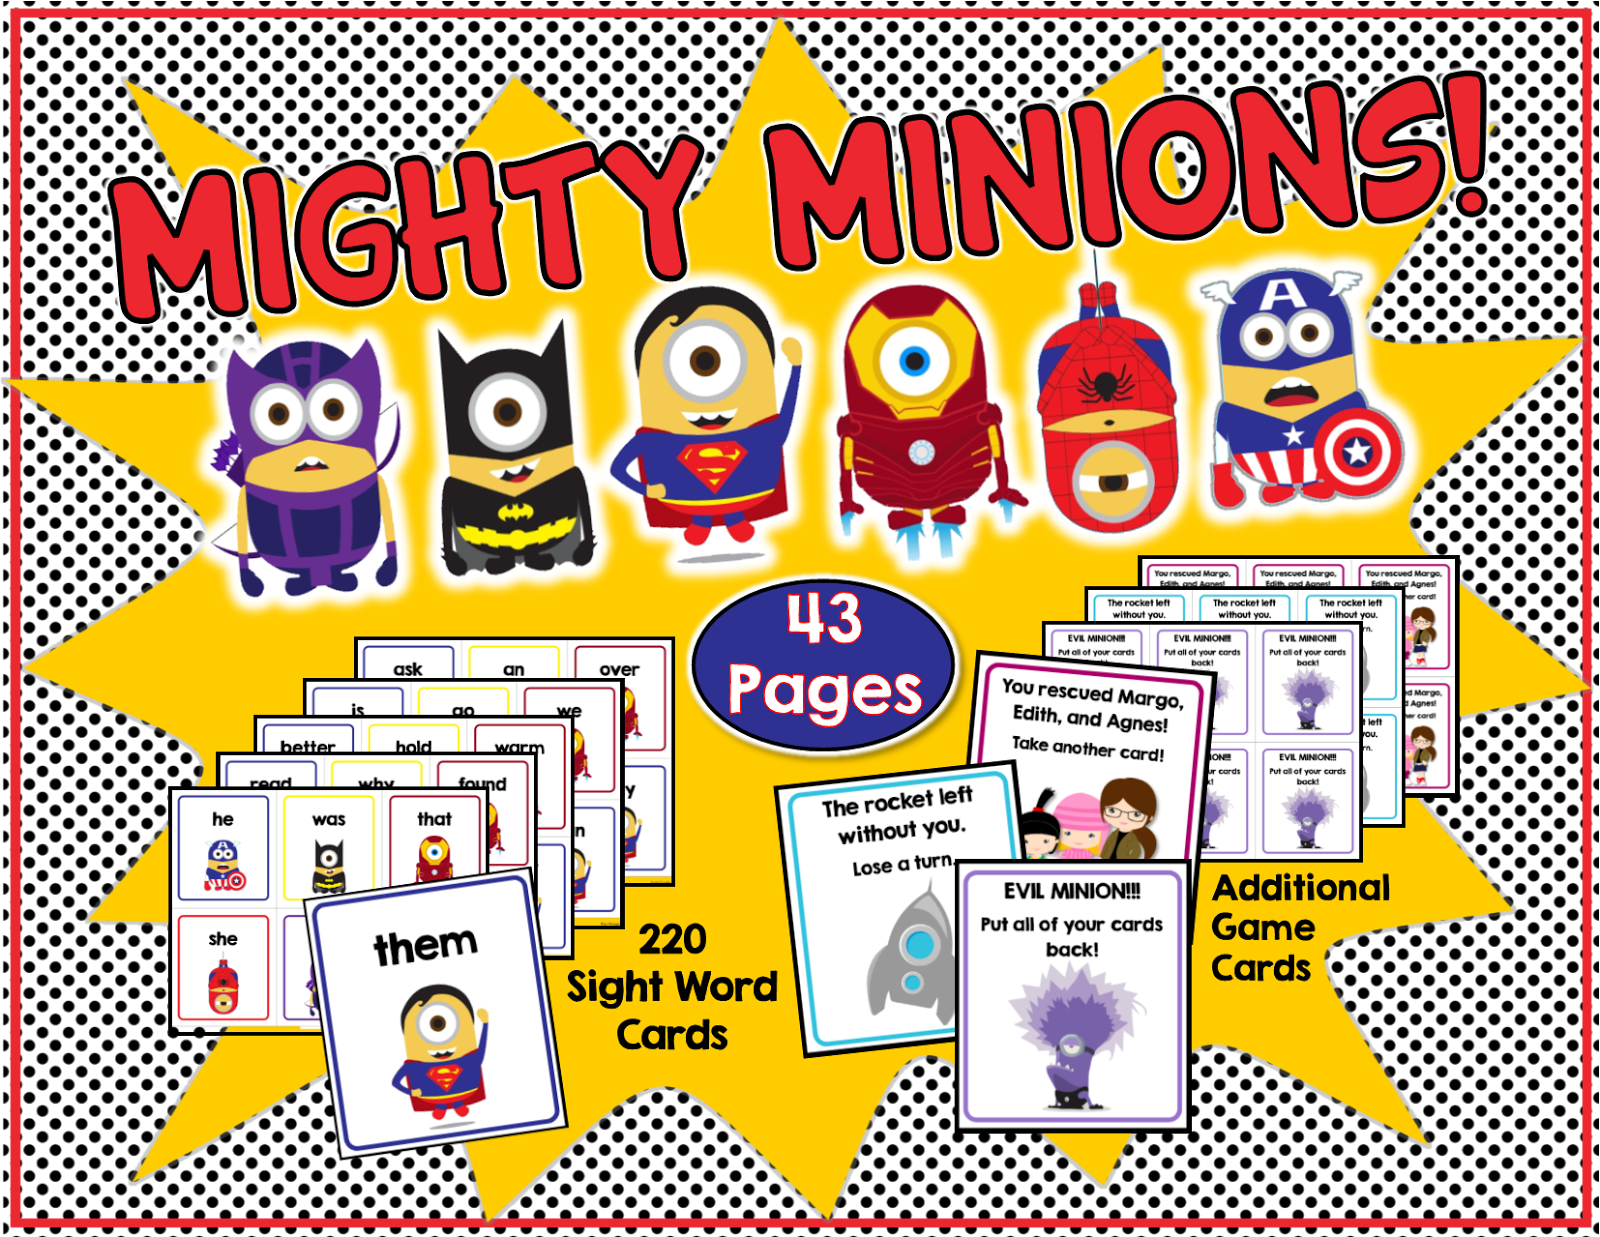 Games clipart share and take turn. Mighty minions don t